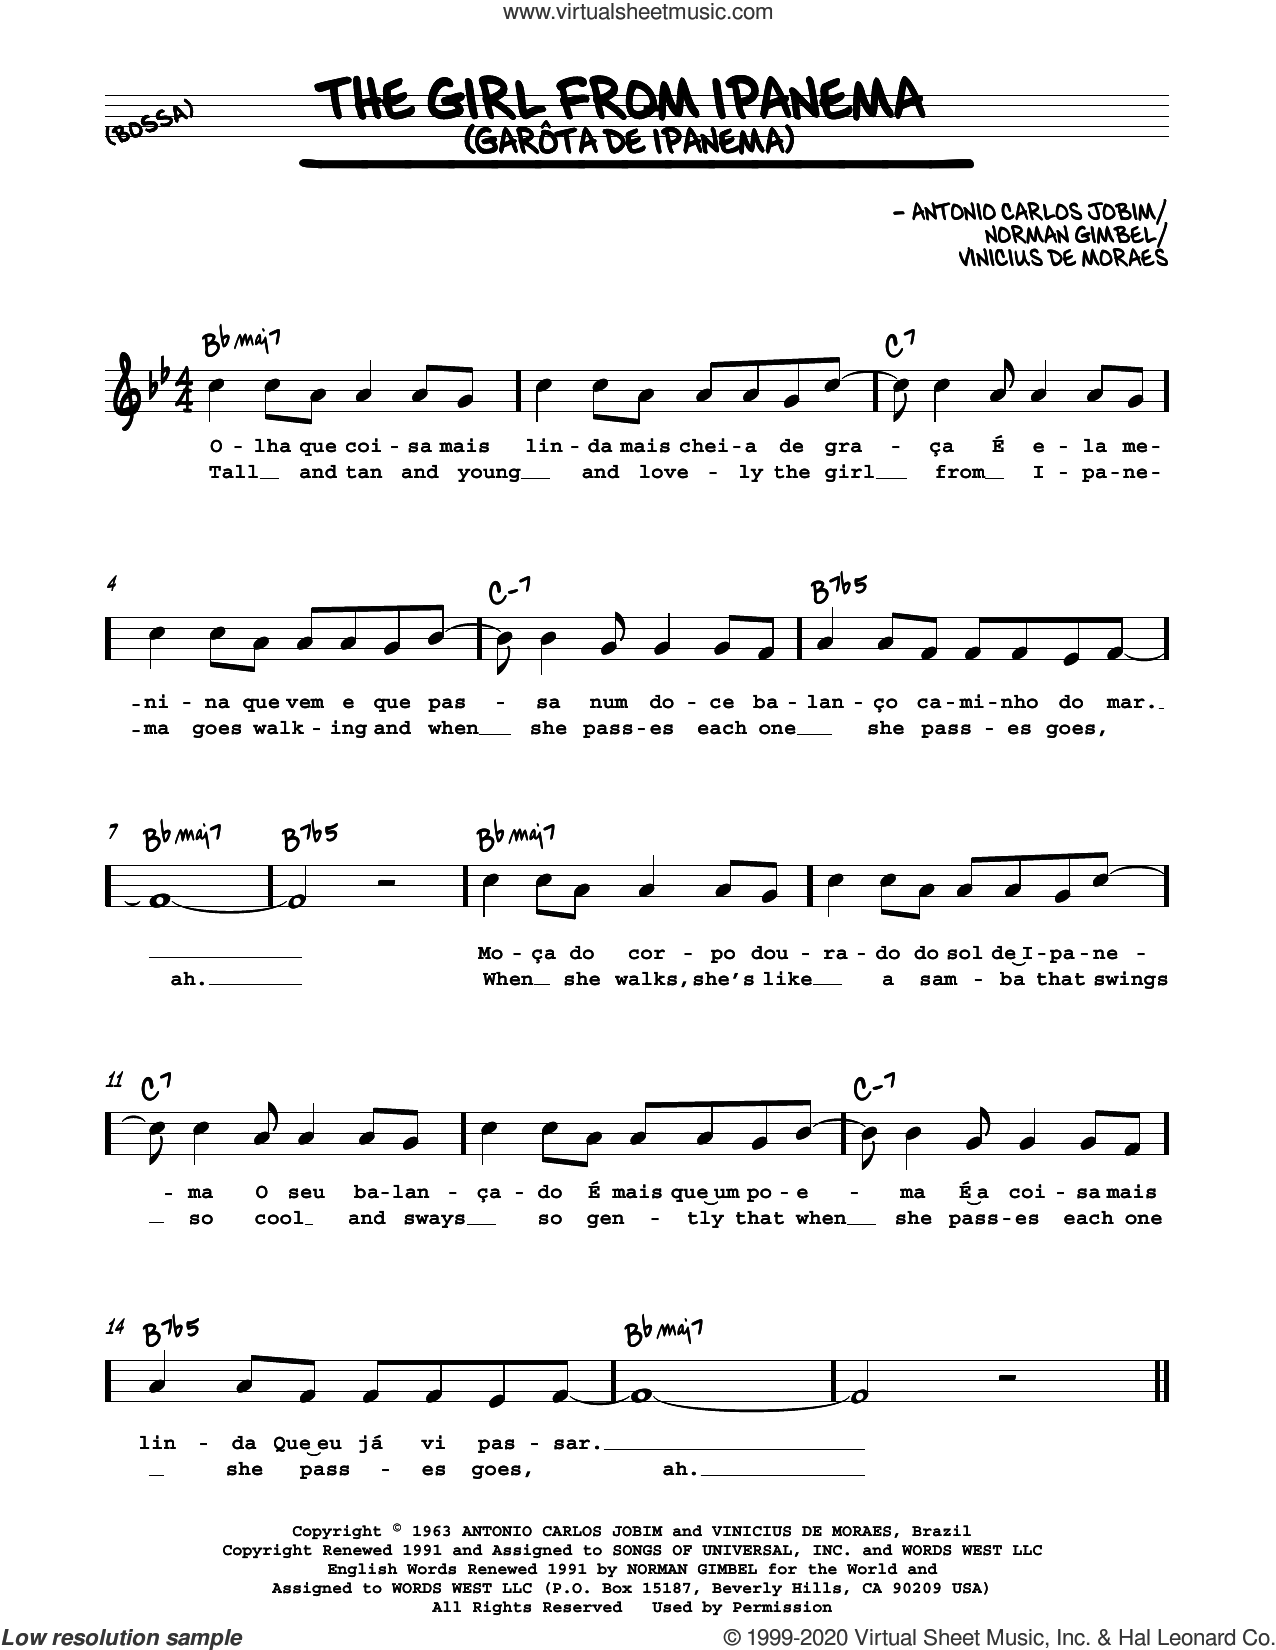 The Girl From Ipanema (Garota De Ipanema) sheet music for voice and other instruments (in Eb) by Norman Gimbel, Antonio Carlos Jobim and Vinicius de Moraes, intermediate skill level